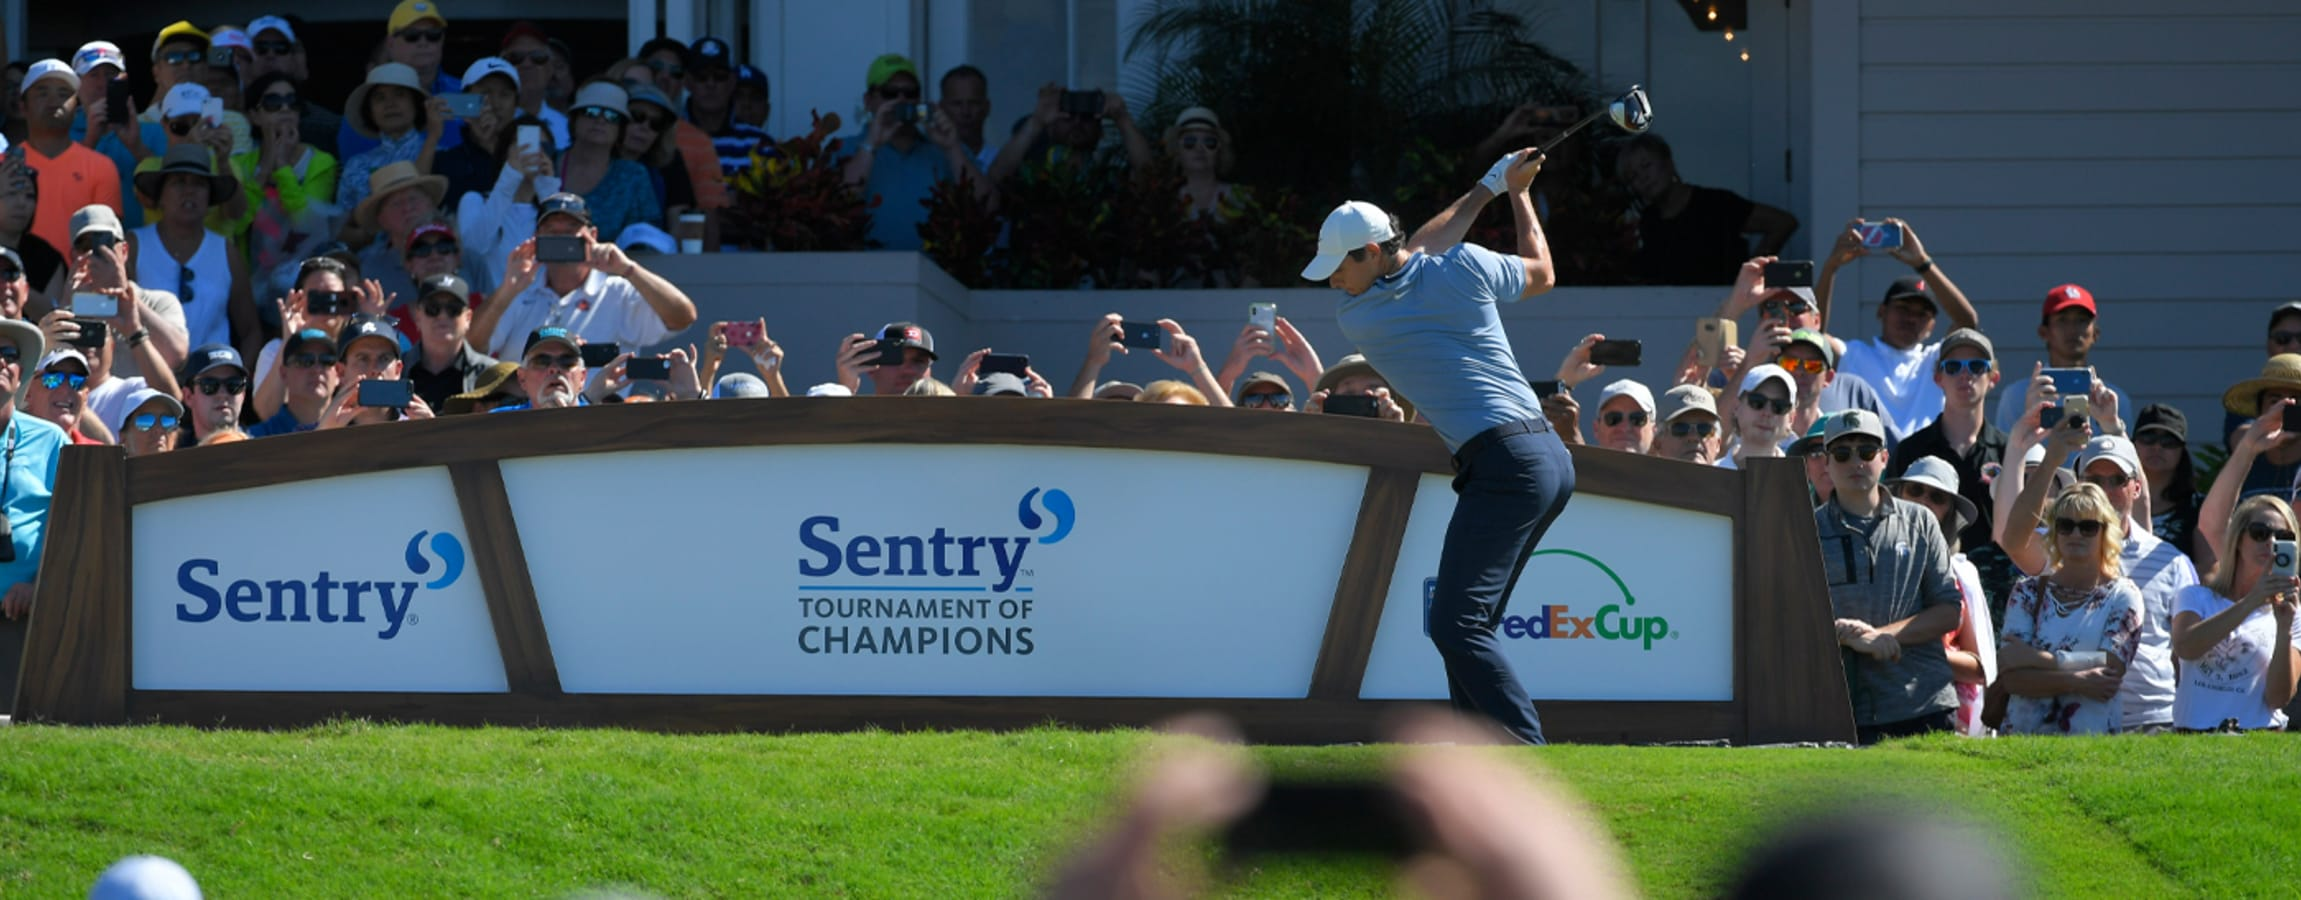 Pga Tour Winners 2020 2020 Sentry Tournament of Champions Tickets Now Available